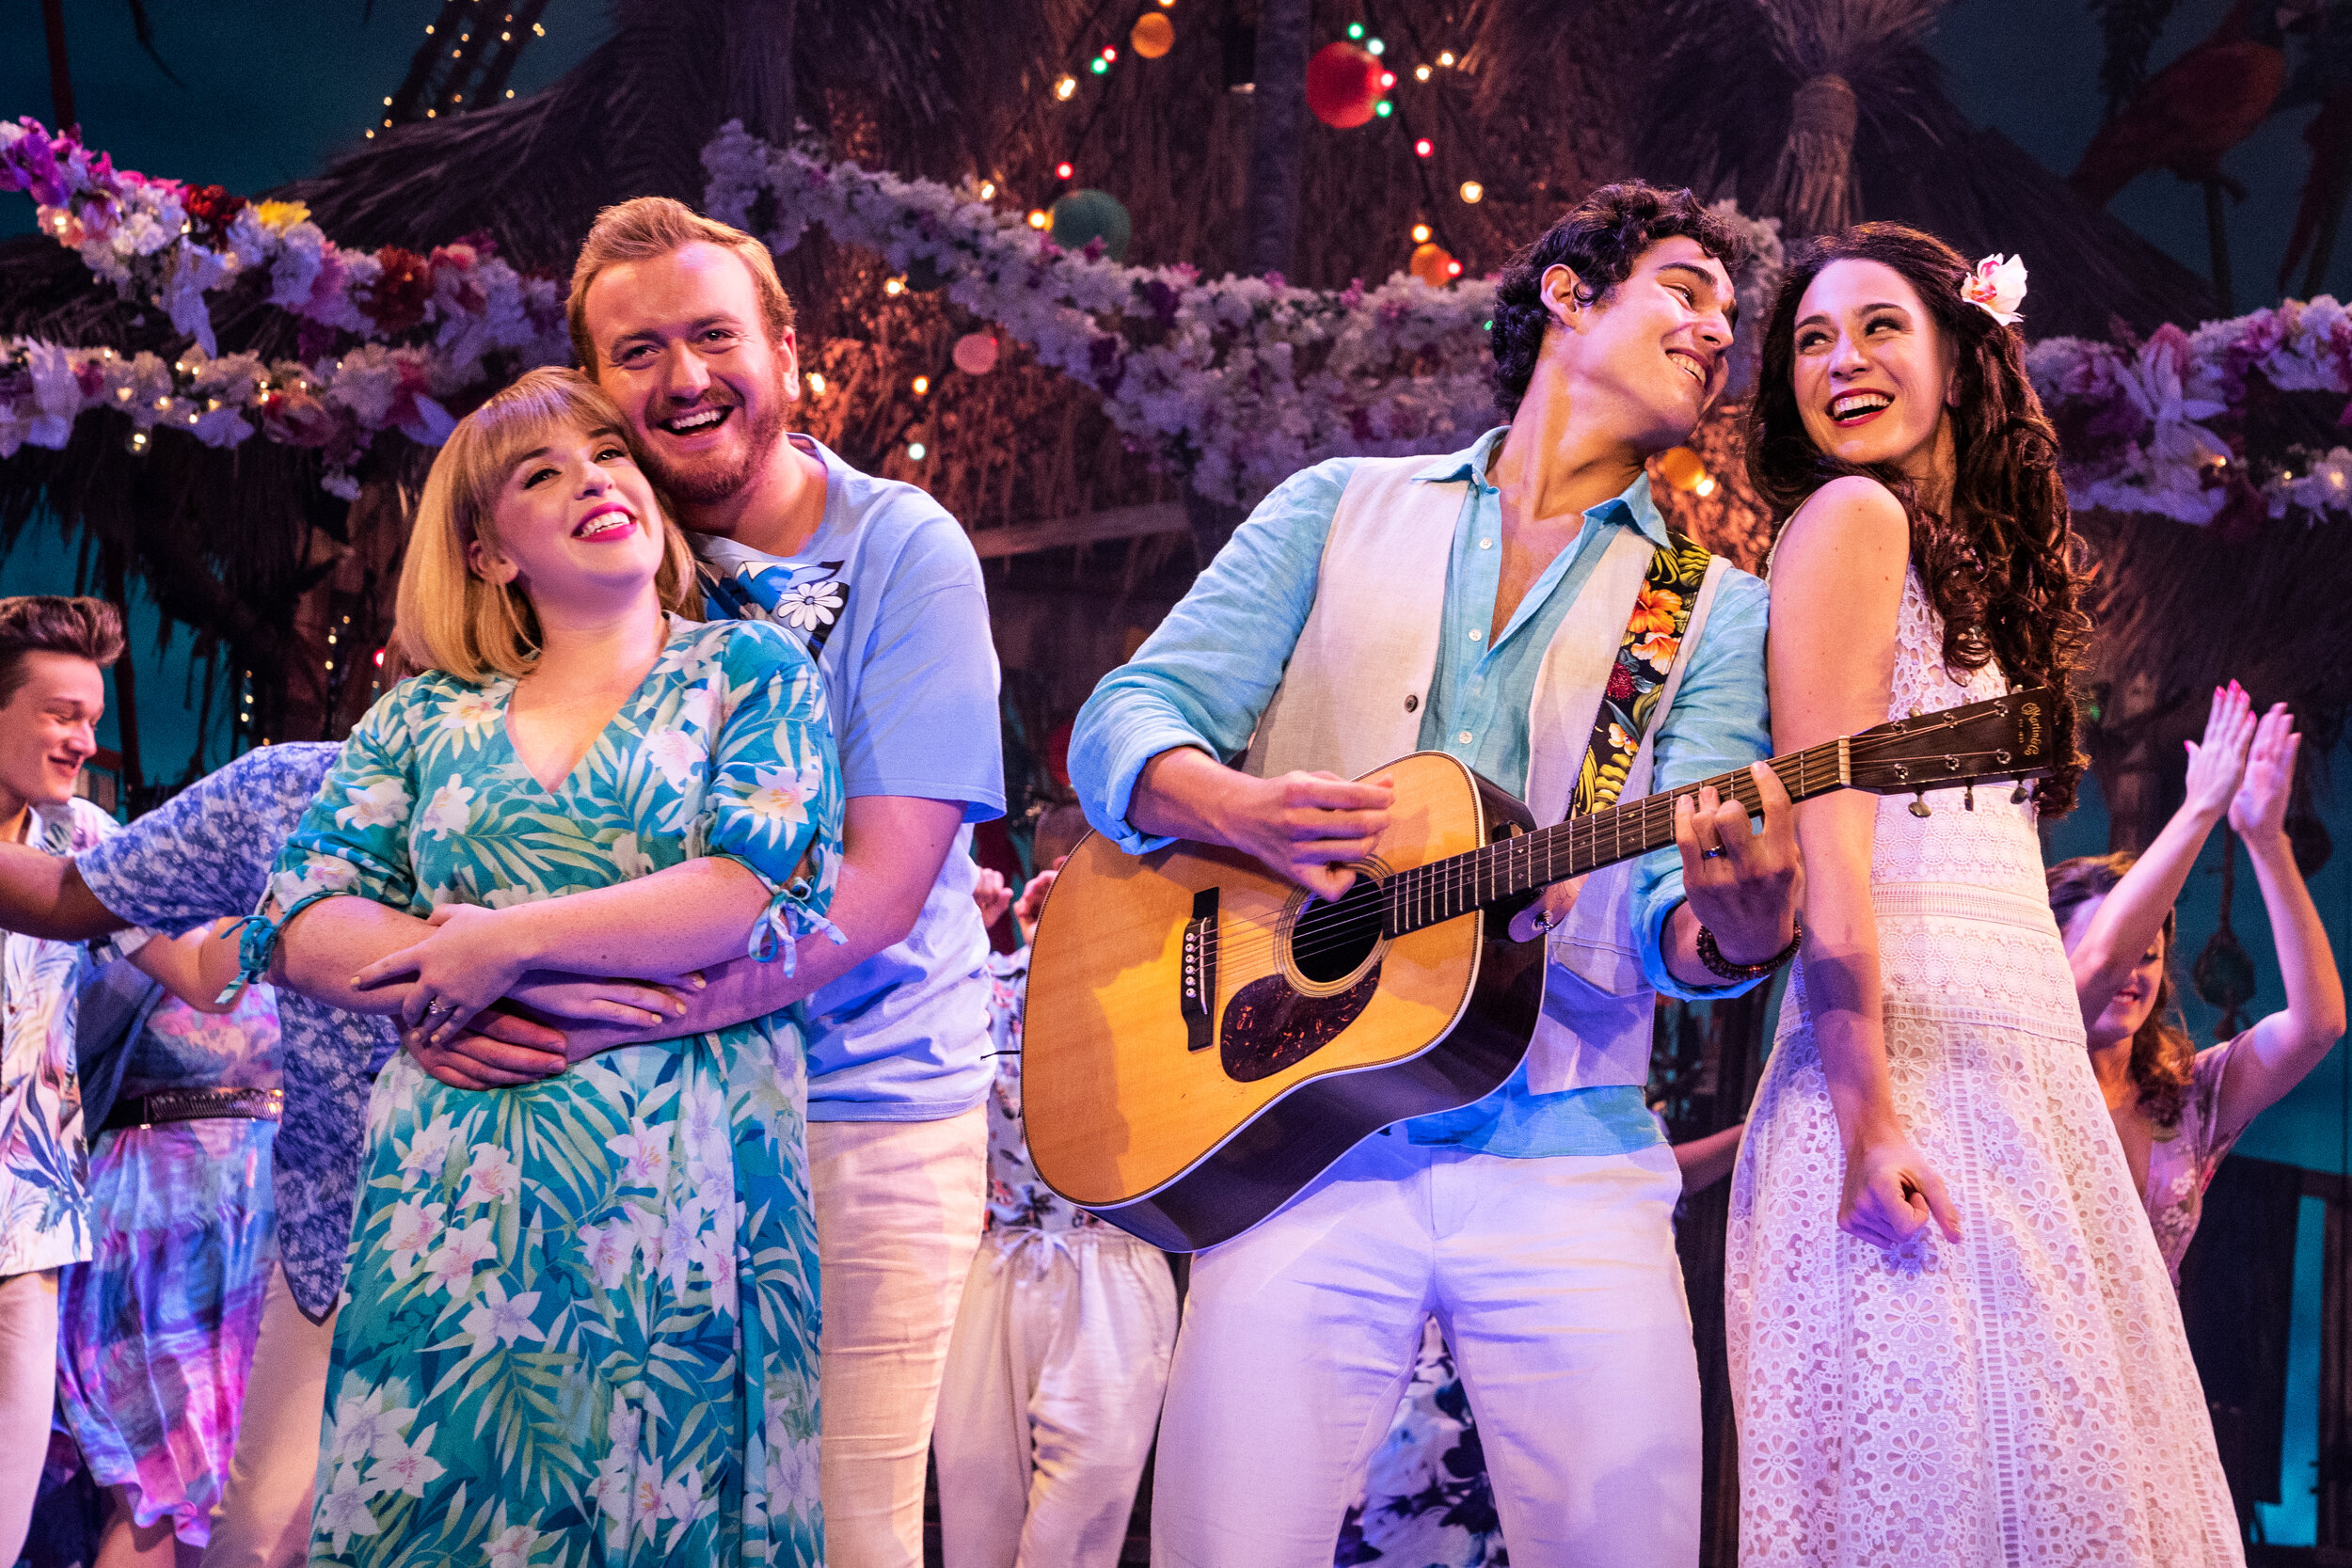 Shelly Lynn Walsh as Tammy, Peter Michael Jordan as Brick, Chris Clark as Tully, Sarah Hinrichsen as Rachel in Jimmy Buffett's ESCAPE TO MARGARITAVILLE. © Matthew Murphy